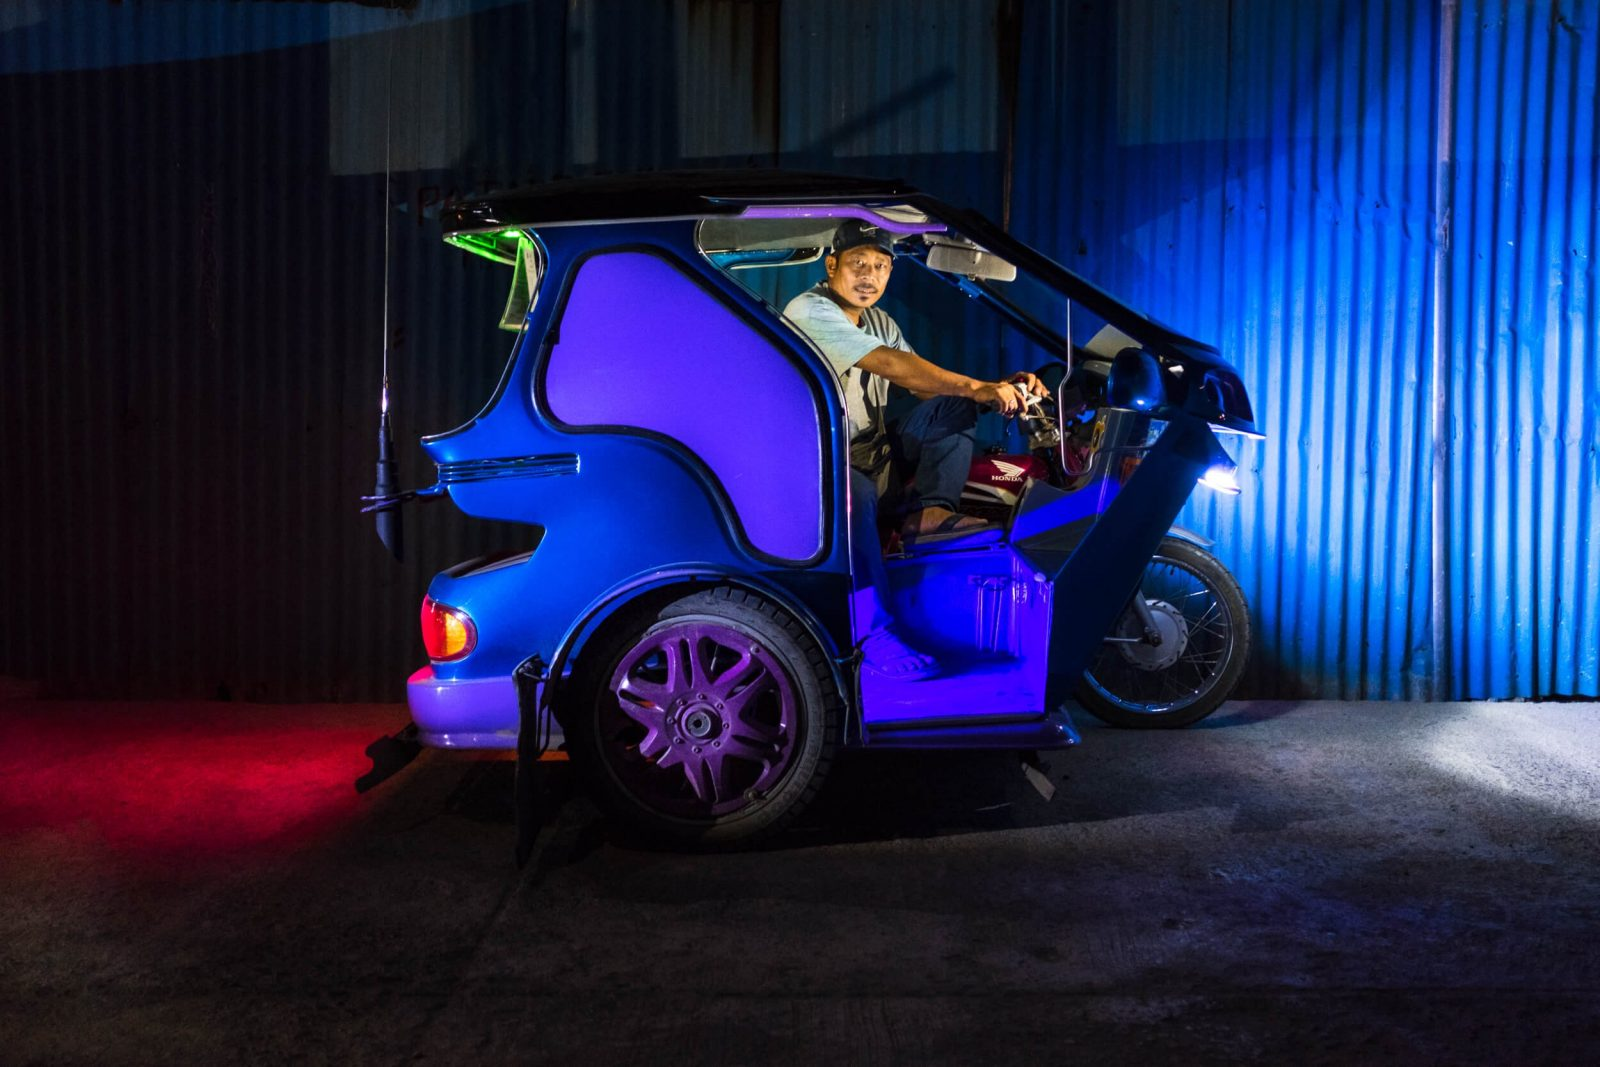 The rainbow taxi drivers relying on their own creativity for business